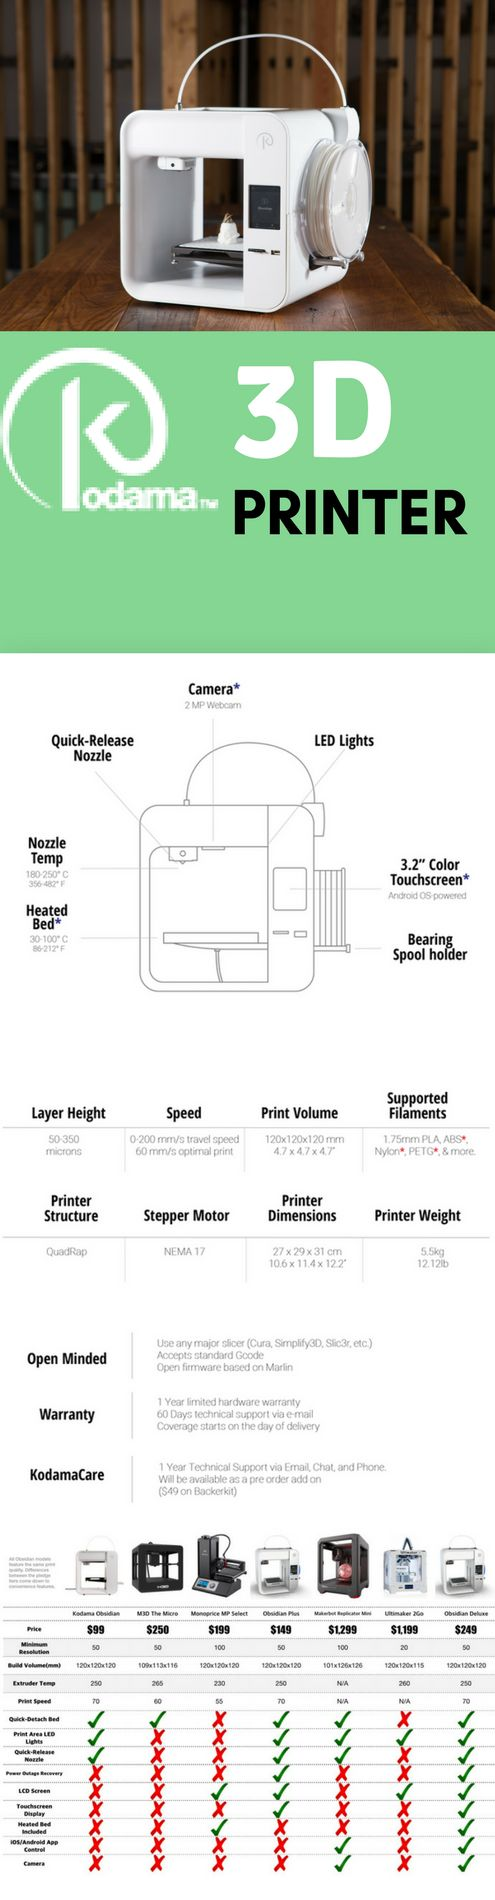 3D Printer from Kodama the high quality and latest design . Here is the full specification and comparison of Obsidian 3D Printer .